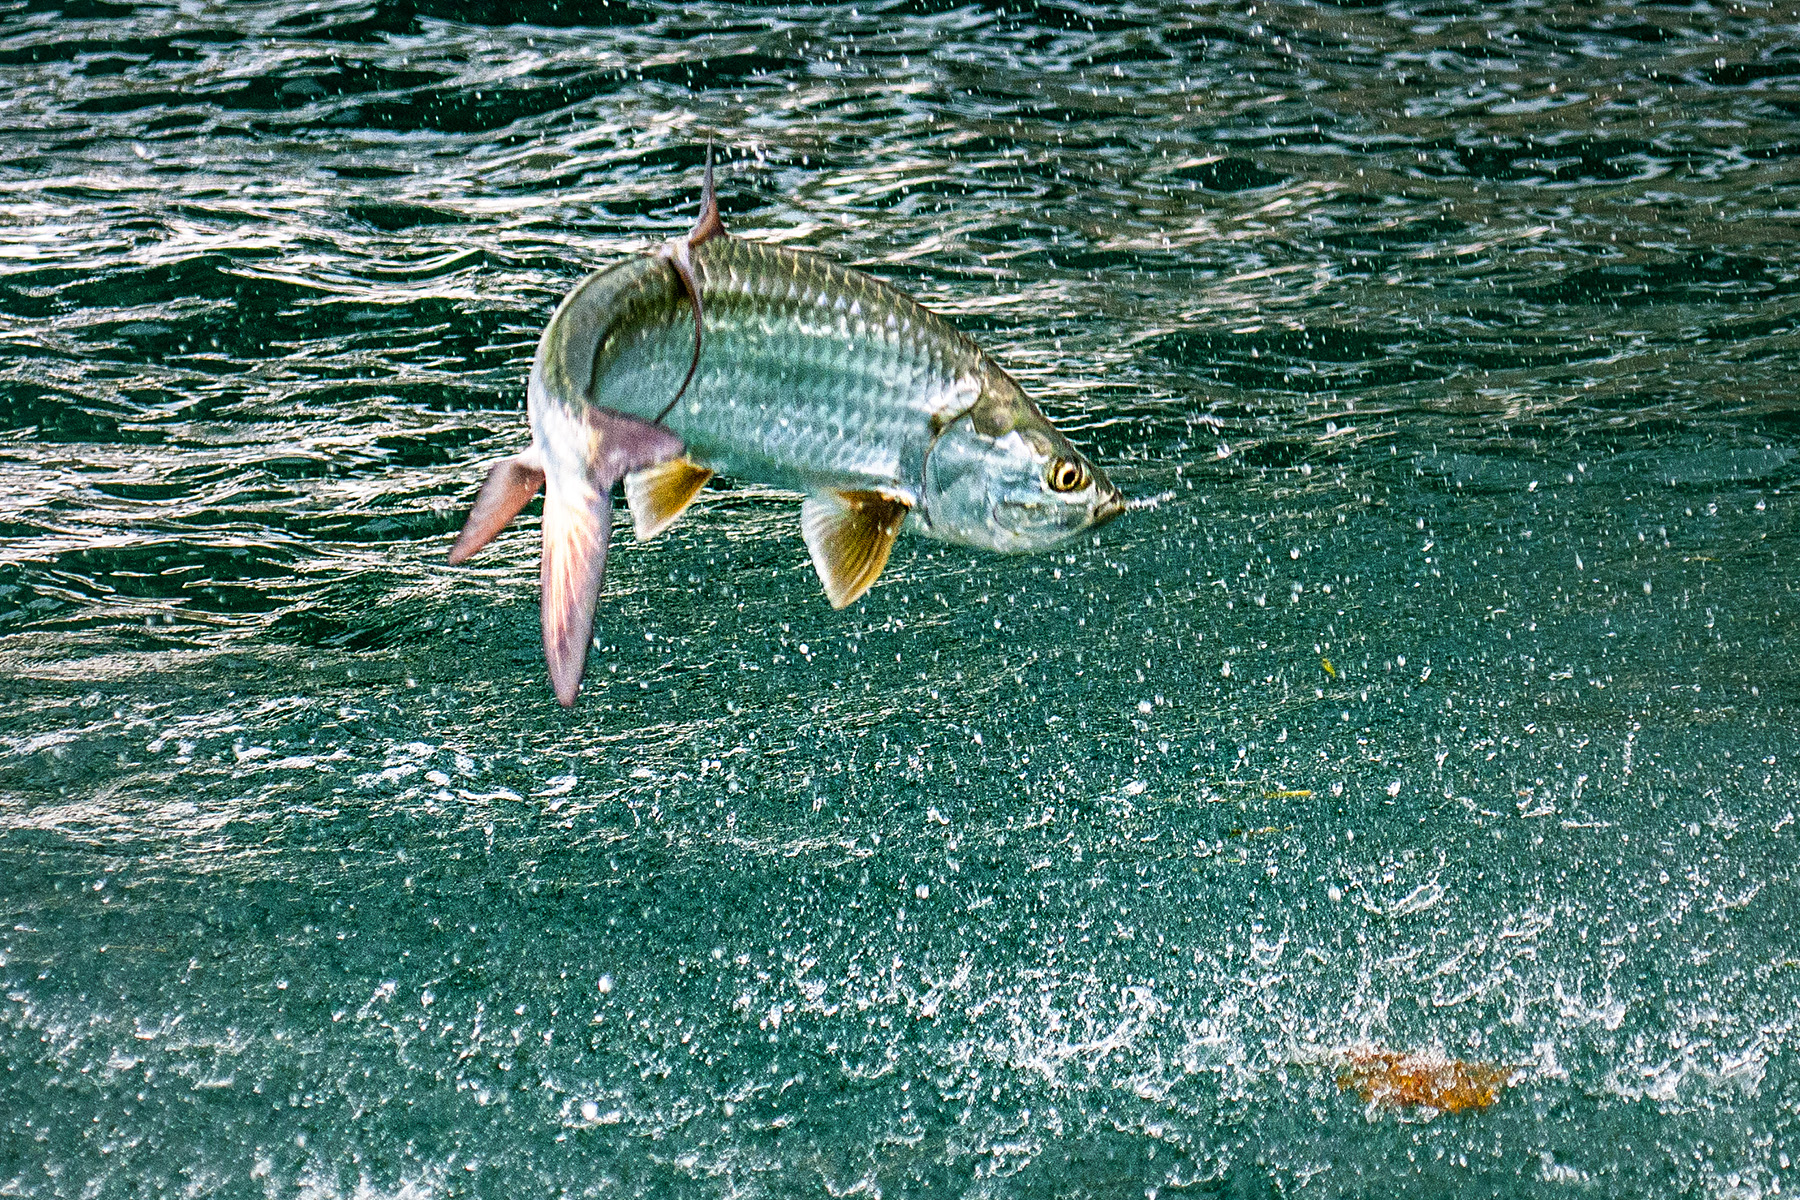 the one decent shot i got of this ballistic tarpon (not as clear as I would like, but fun anyway). nikon d300s, 130mm, f/4.0, 1/1000 sec.